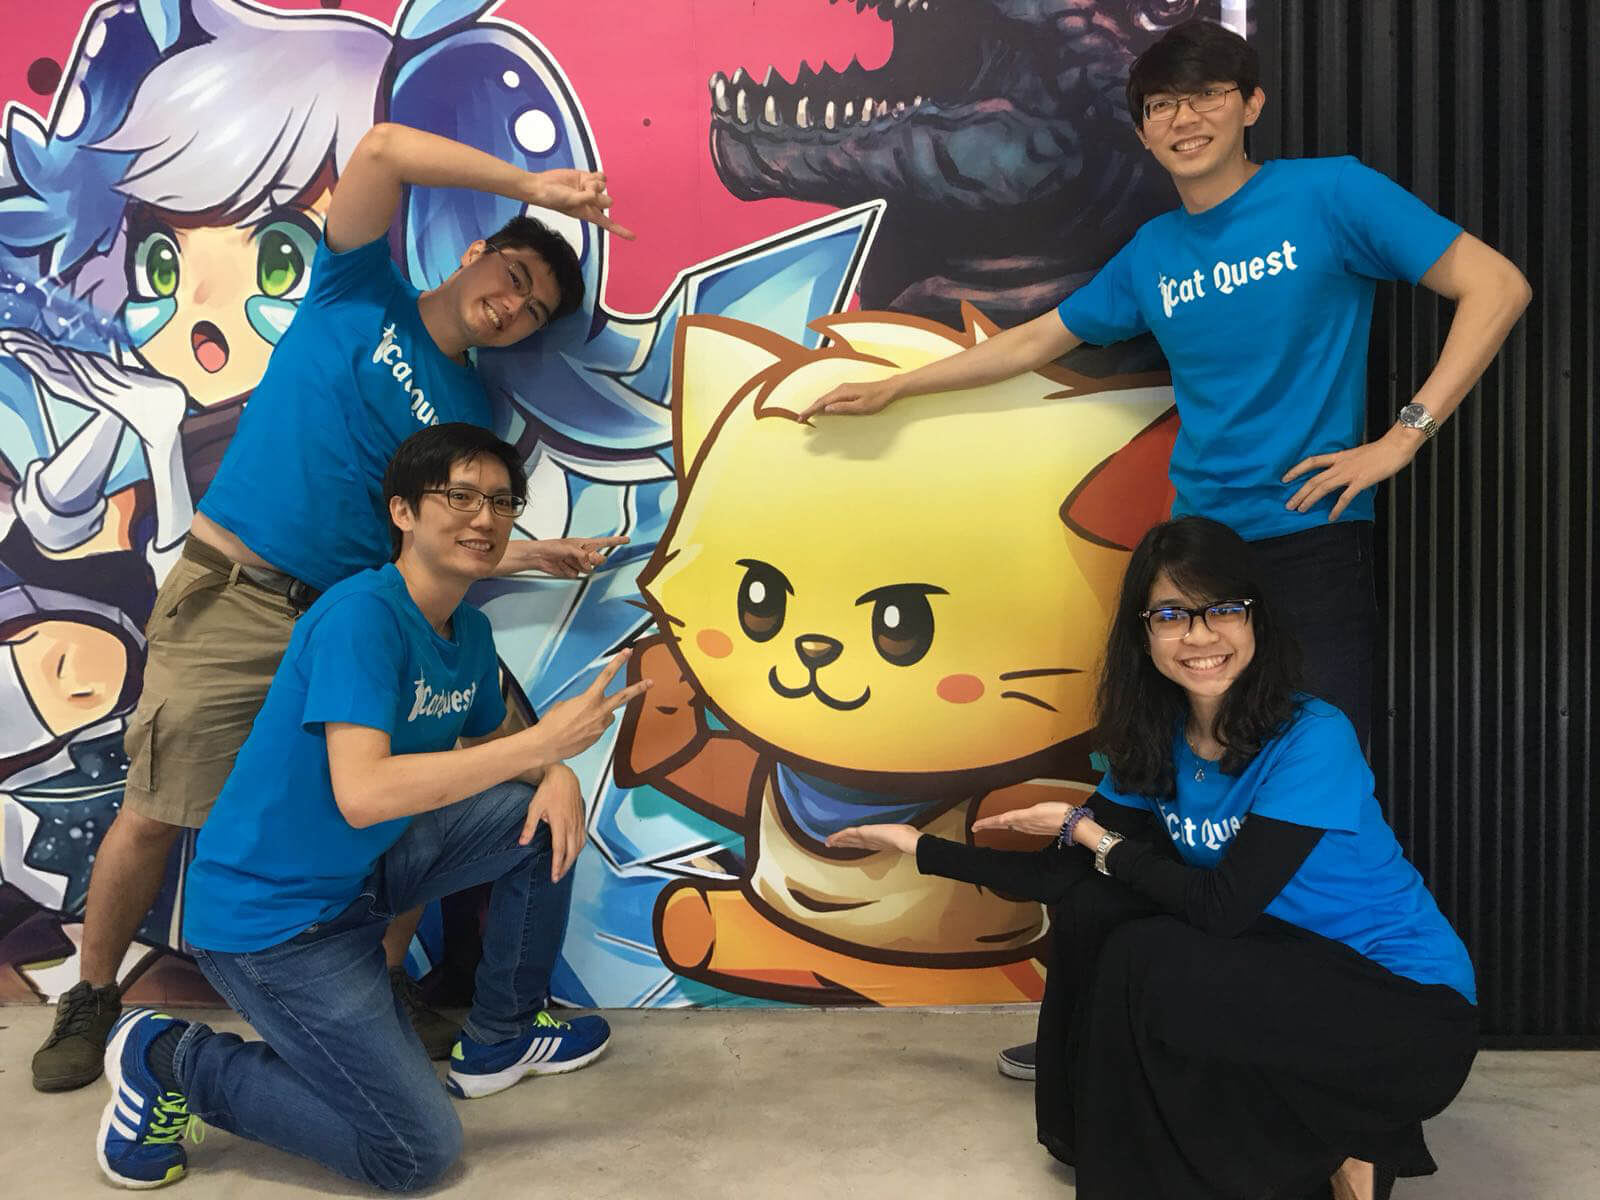 Four Gentlebros team members wearing Cat Quest T-shirts pose in front of a Cat Quest backdrop.